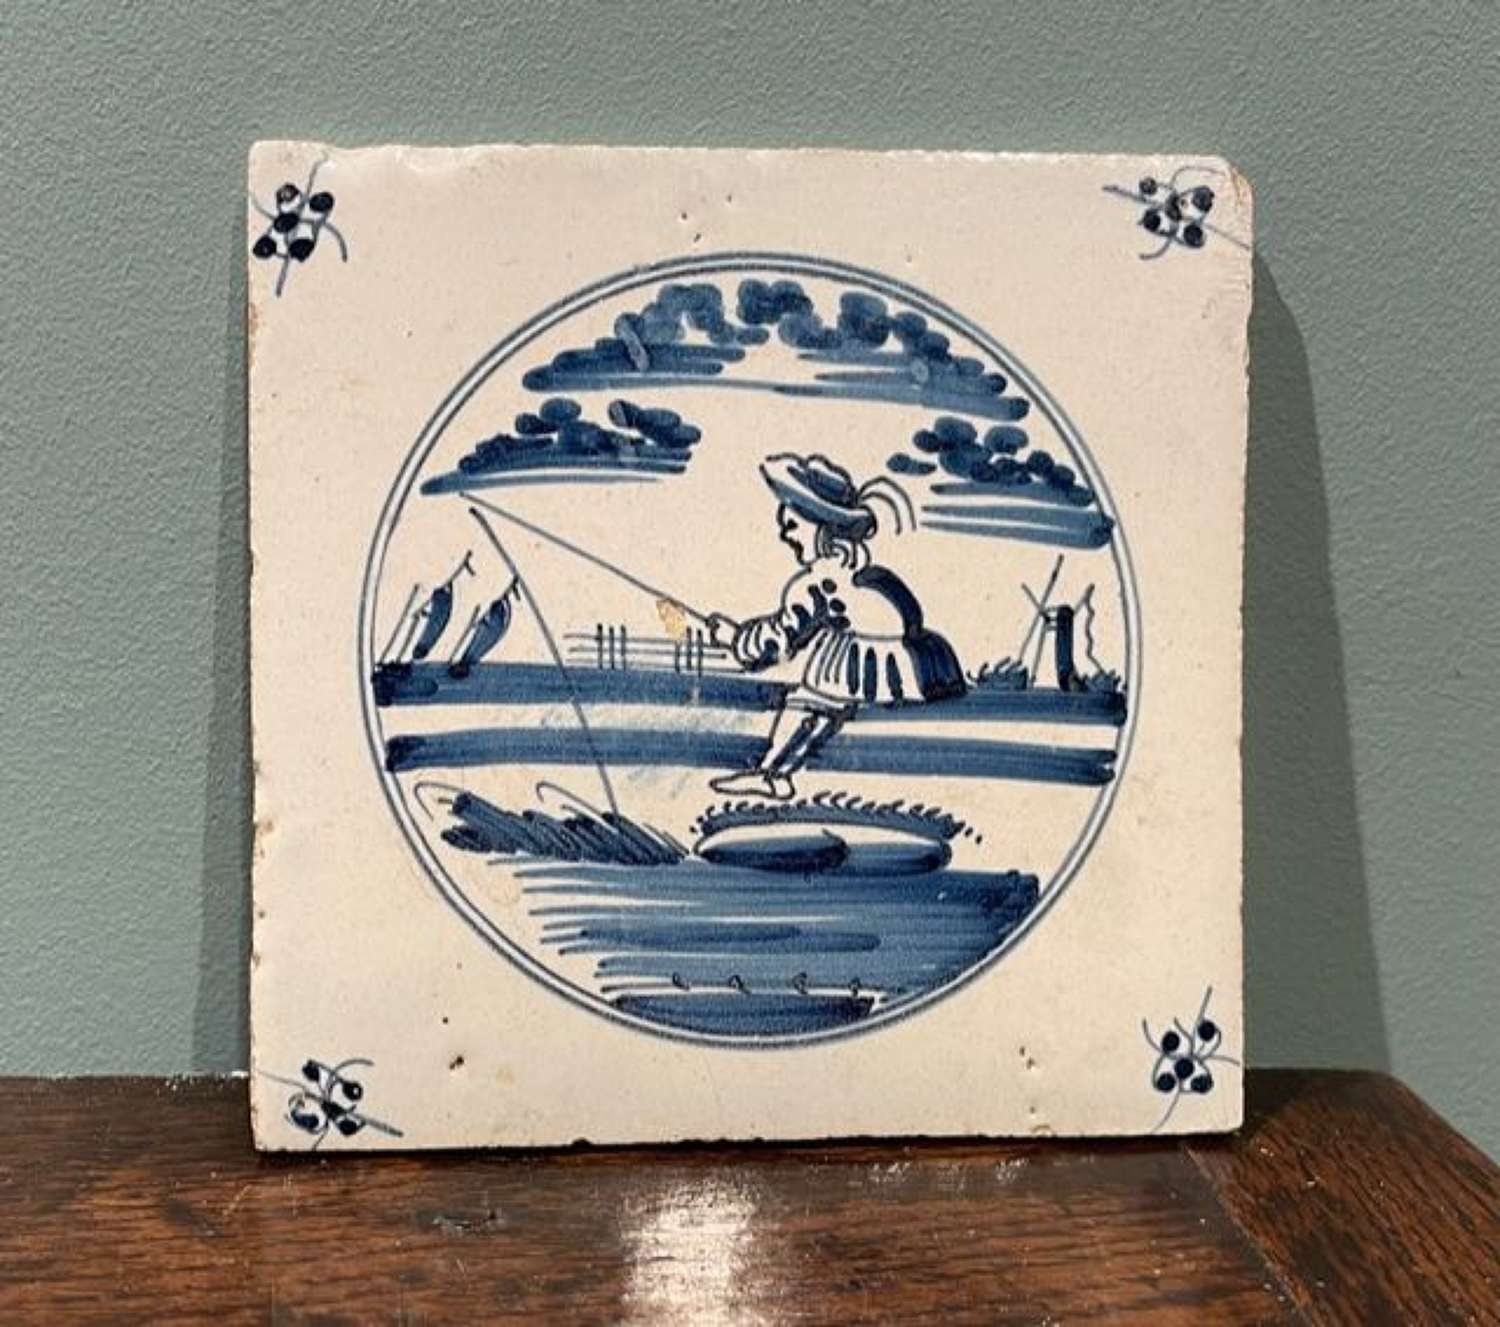 18th c. Dutch Delft tile - Fisherman